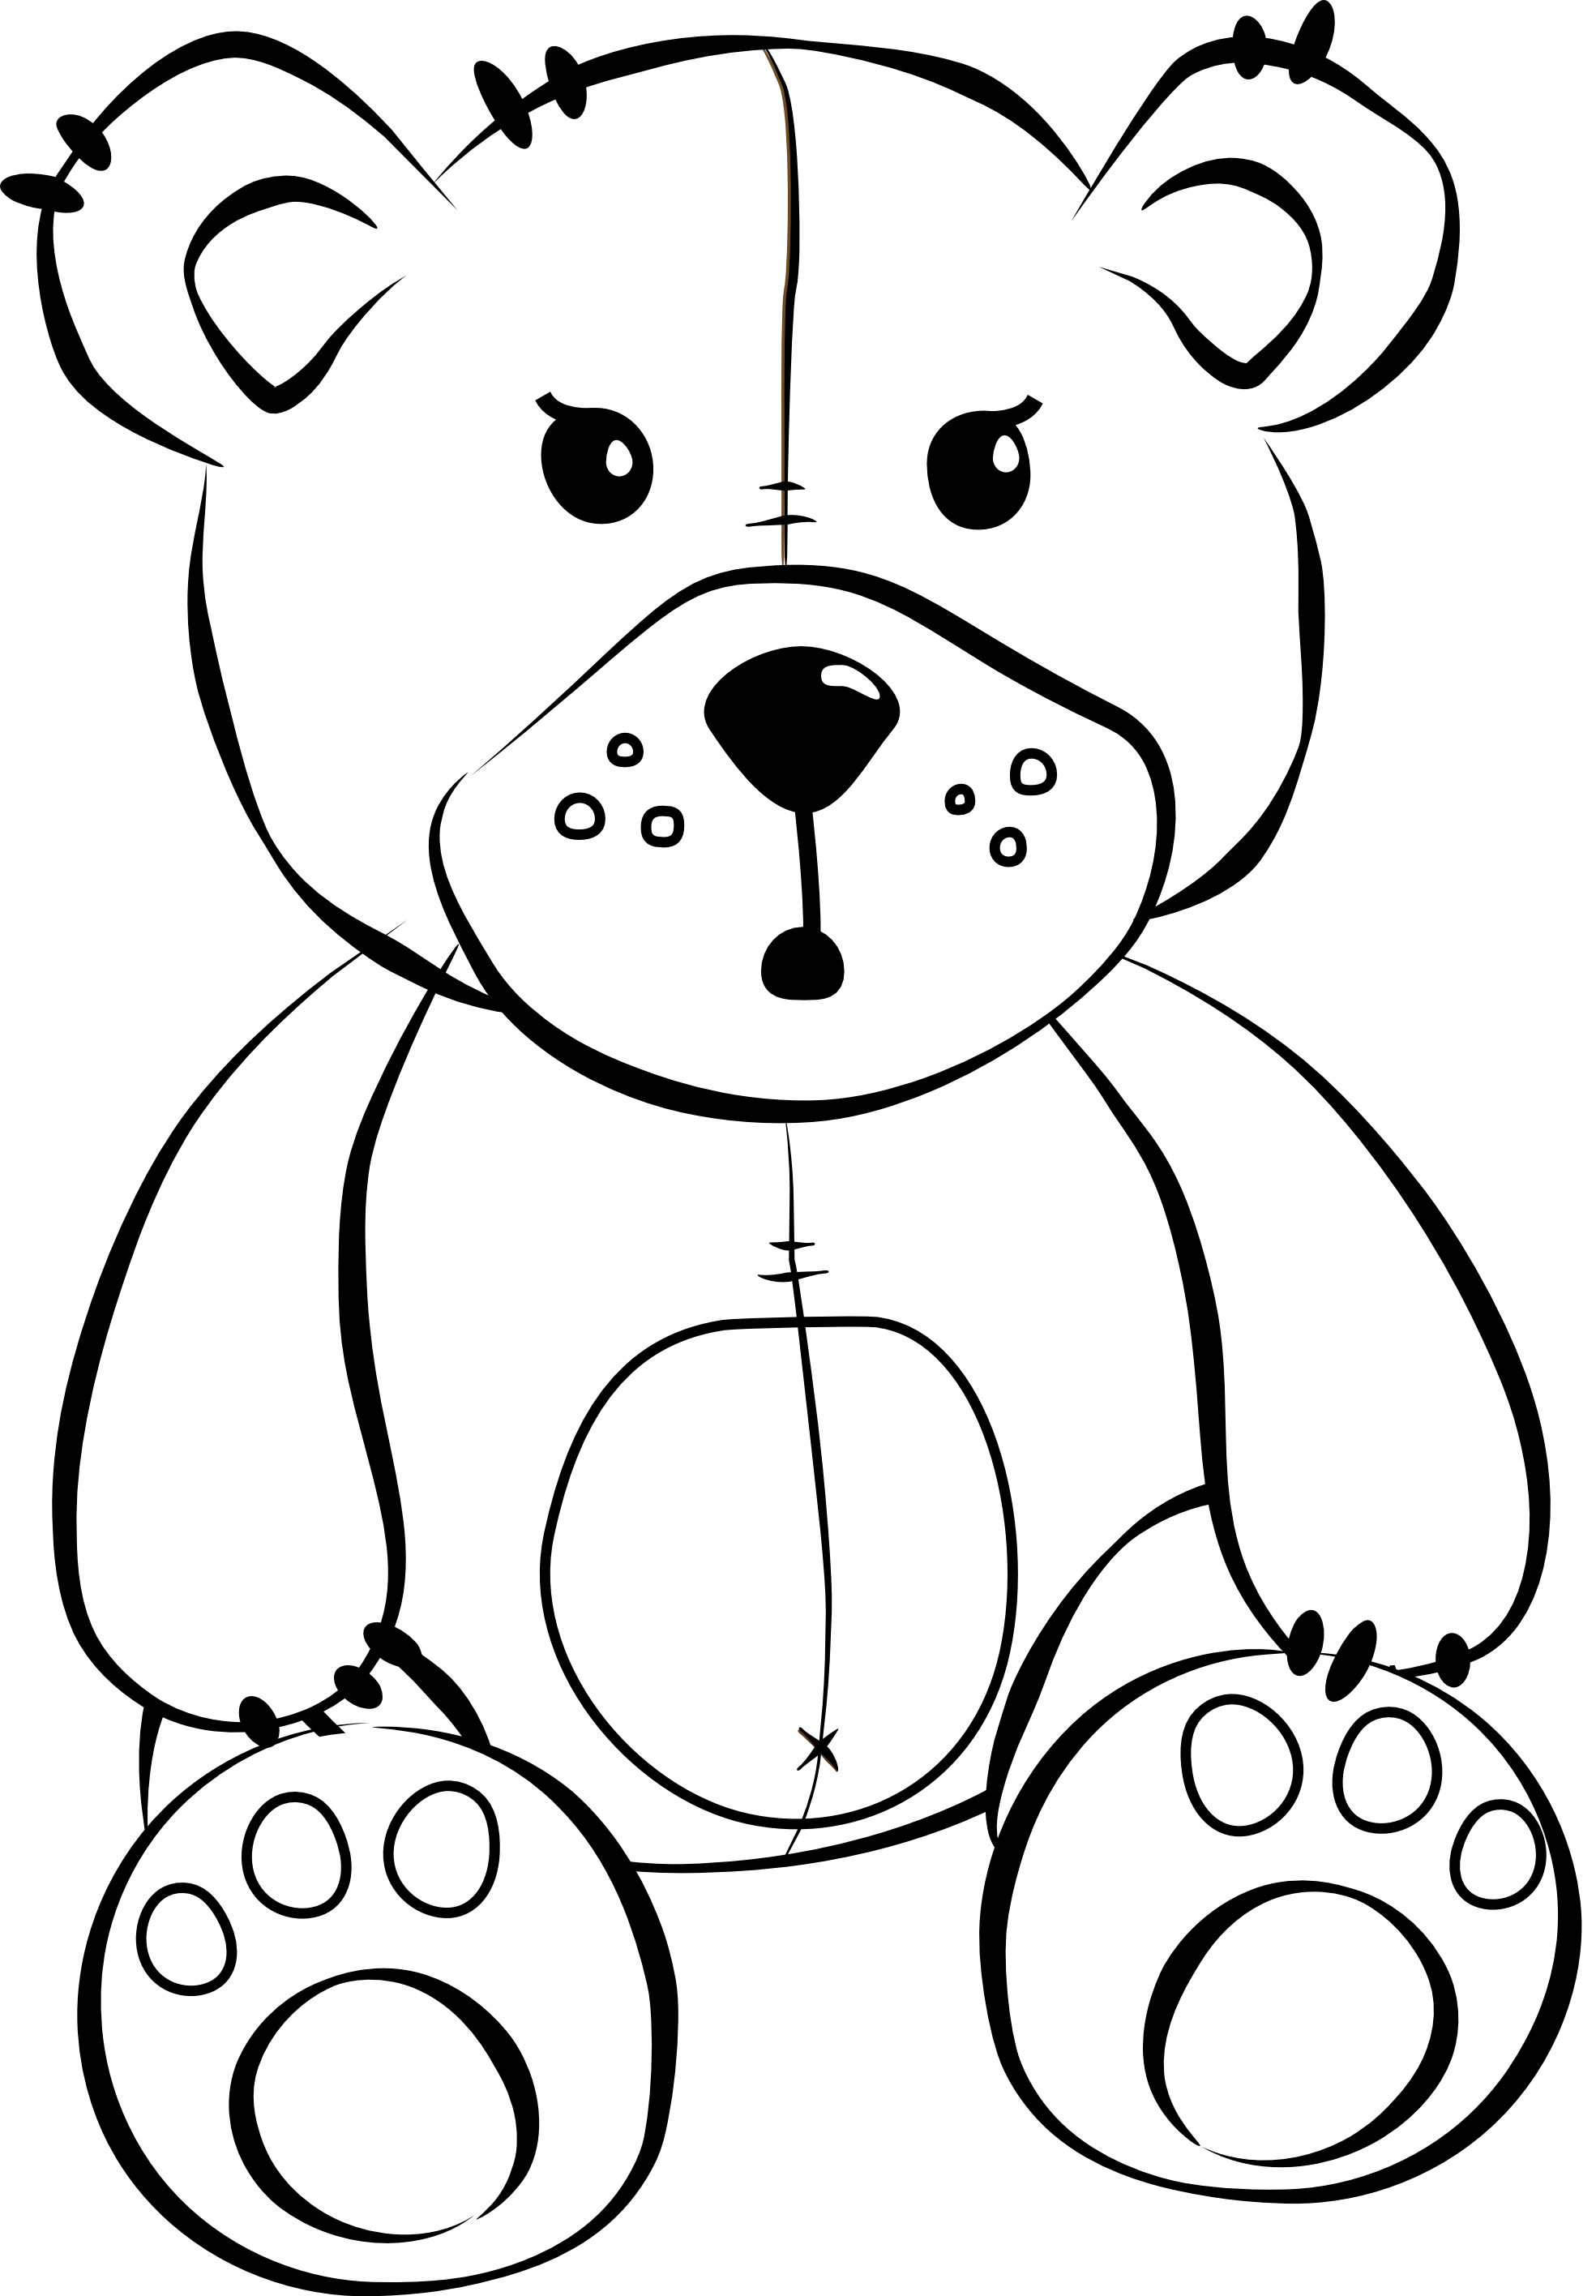 stuffed animal coloring pages stuffed animal coloring pages coloring home stuffed pages coloring animal